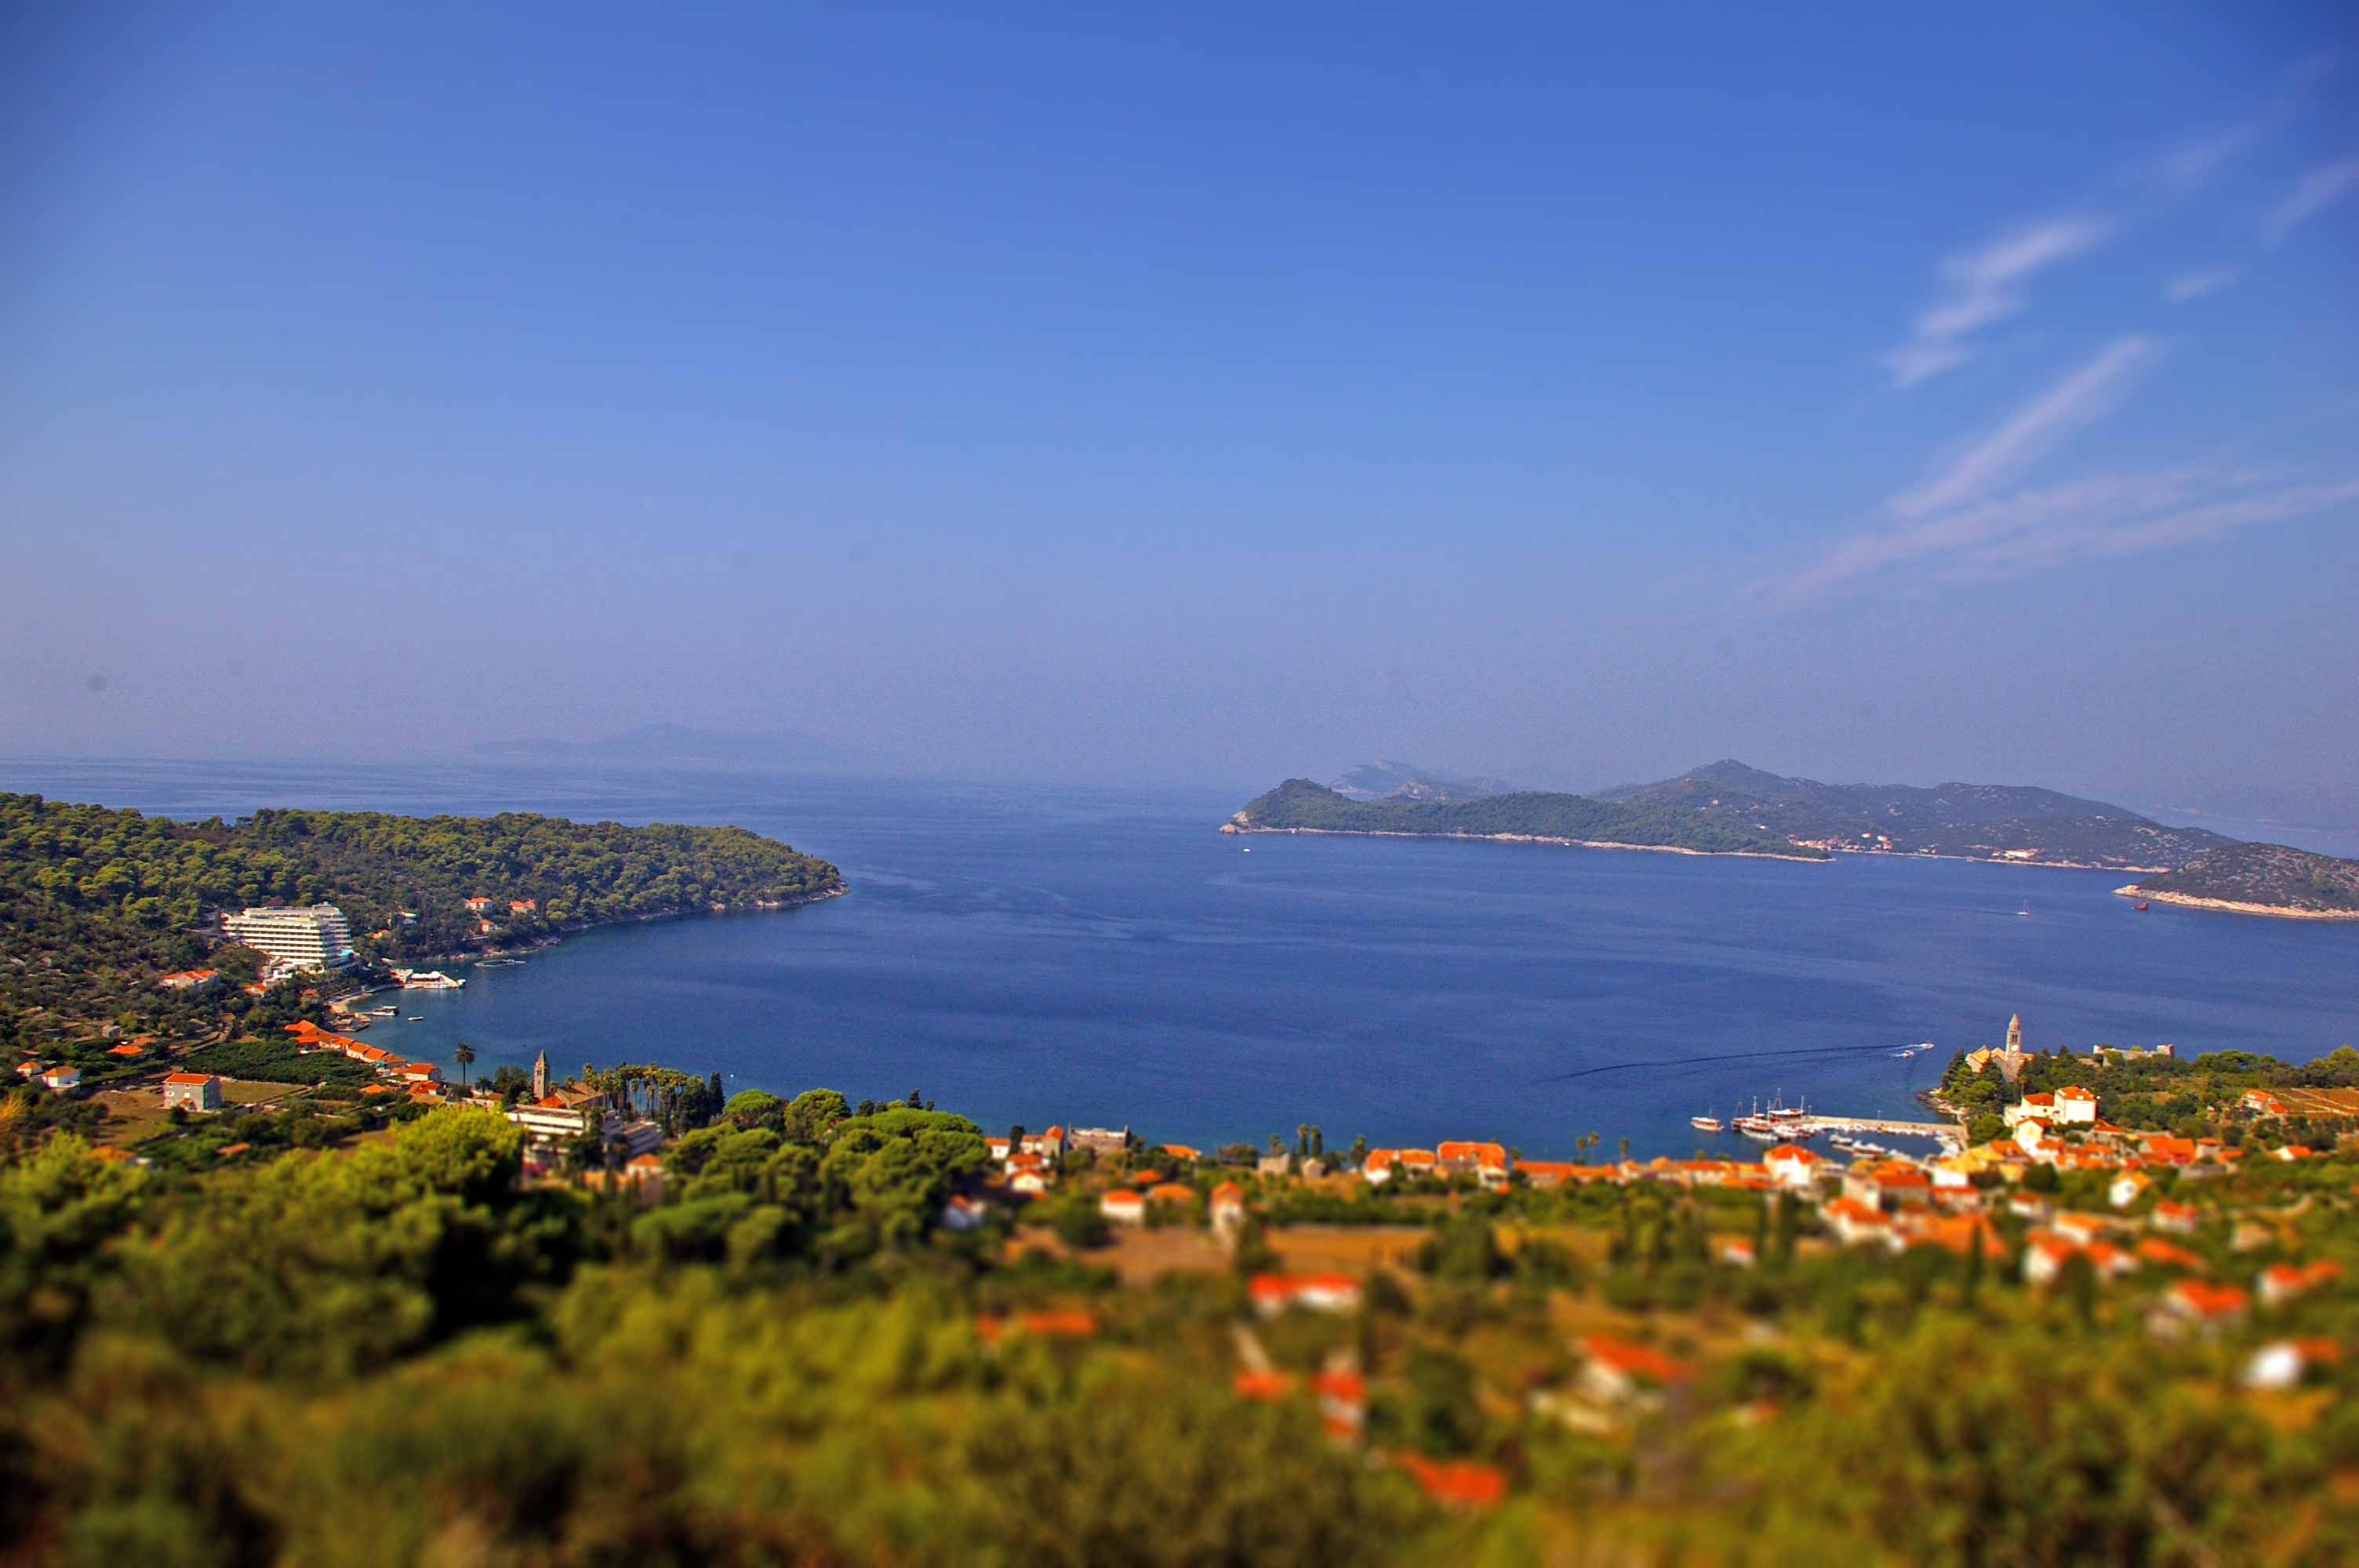 -images-excursions-elaphite-islands-speed-boat-excursion--lopud-panorama.jpg